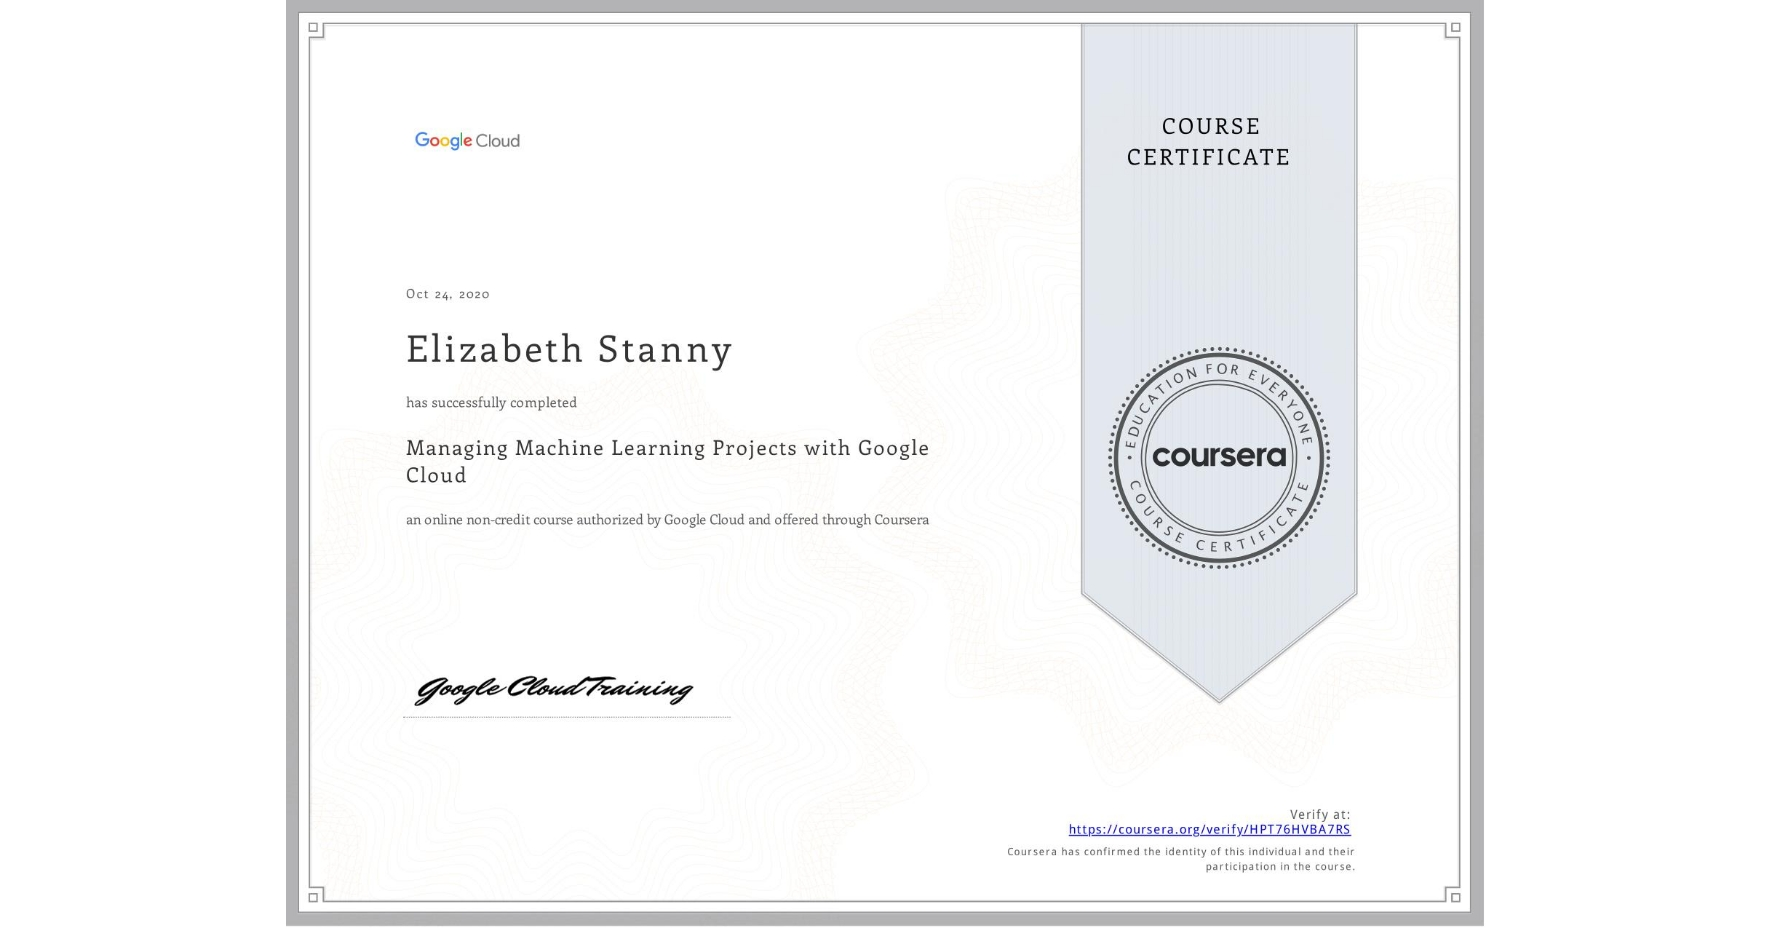 View certificate for Elizabeth Stanny, Managing Machine Learning Projects with Google Cloud, an online non-credit course authorized by Google Cloud and offered through Coursera